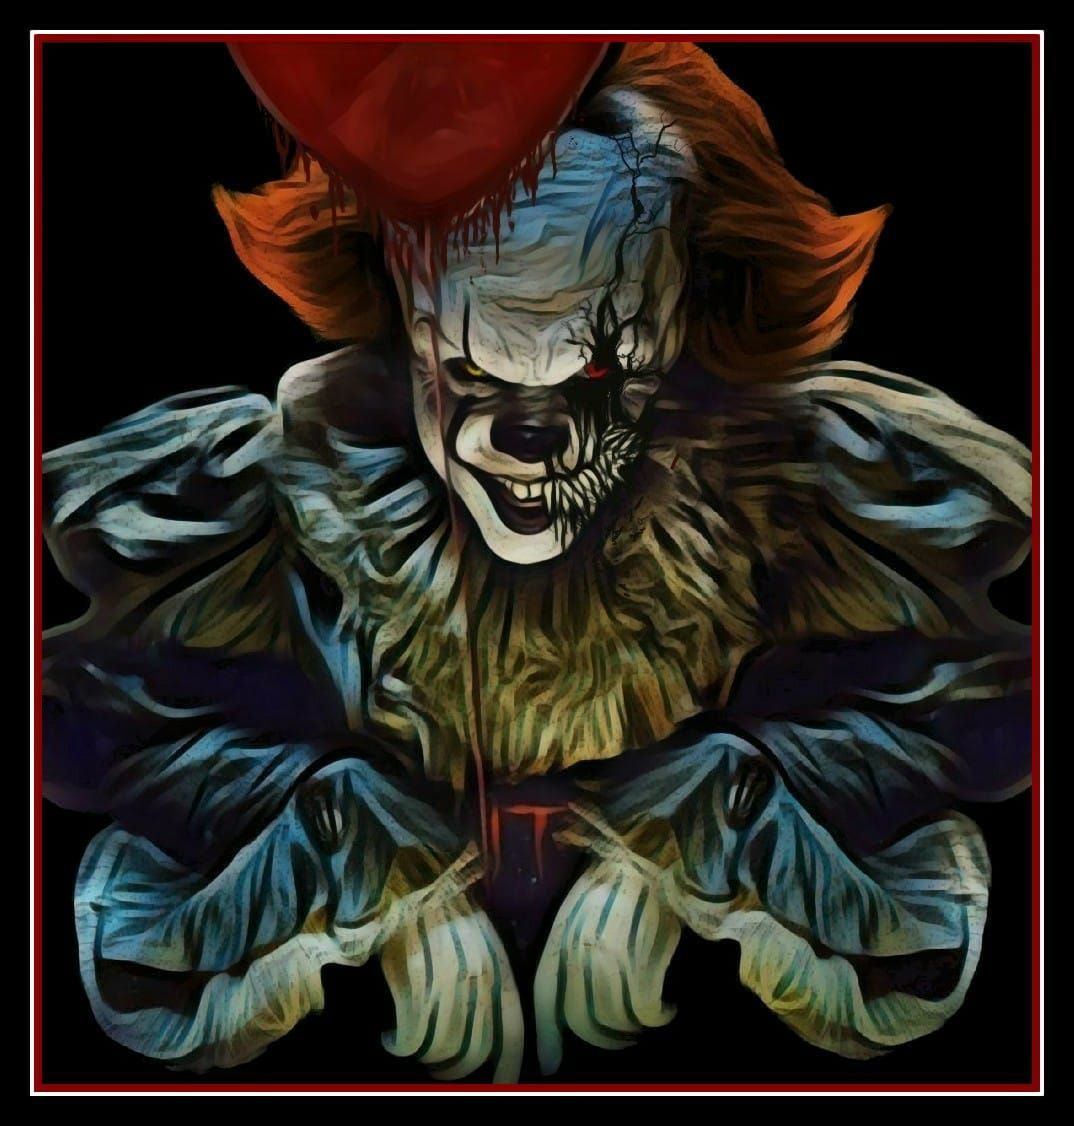 Pennywise Clown horror, Pennywise, Pennywise the dancing